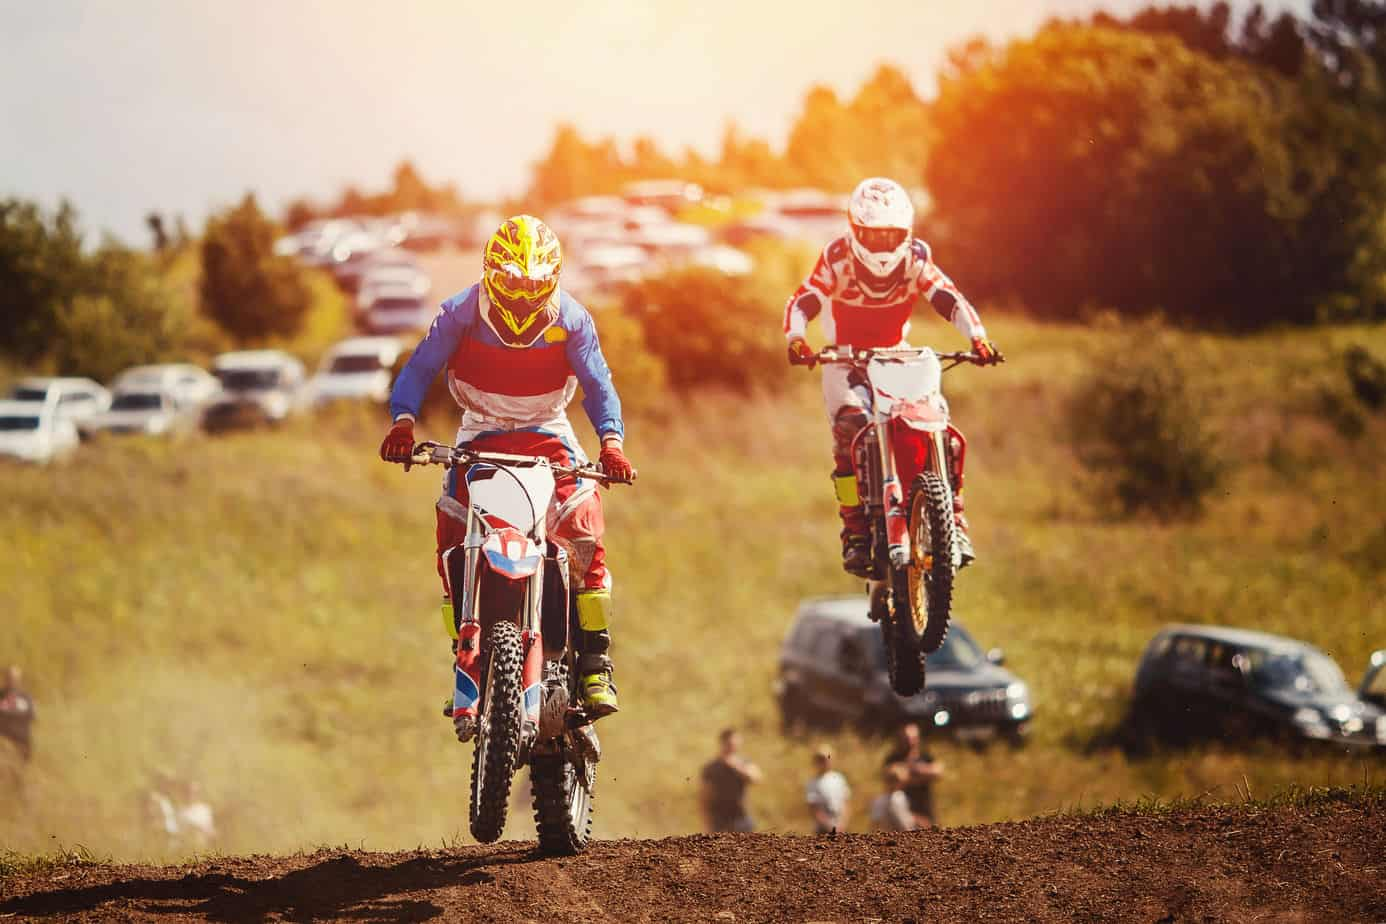 Dirt Bike Reliability: Is a 2 stroke more reliable than a 4 stroke?